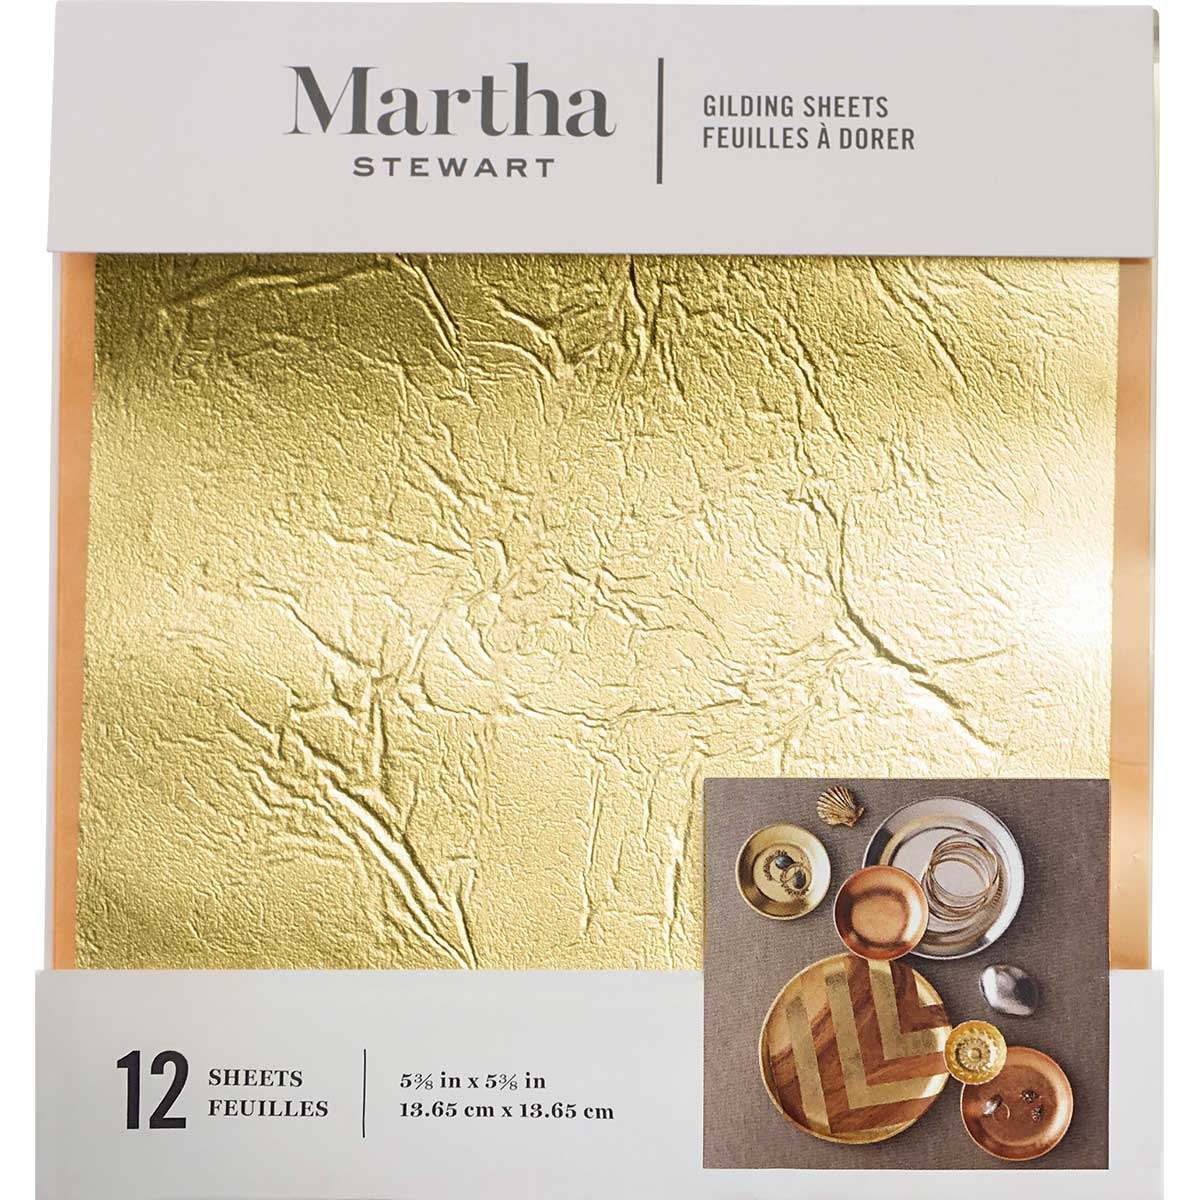 Martha Stewart ® Gilding Sheets - Gold, 12 pc. - 33317